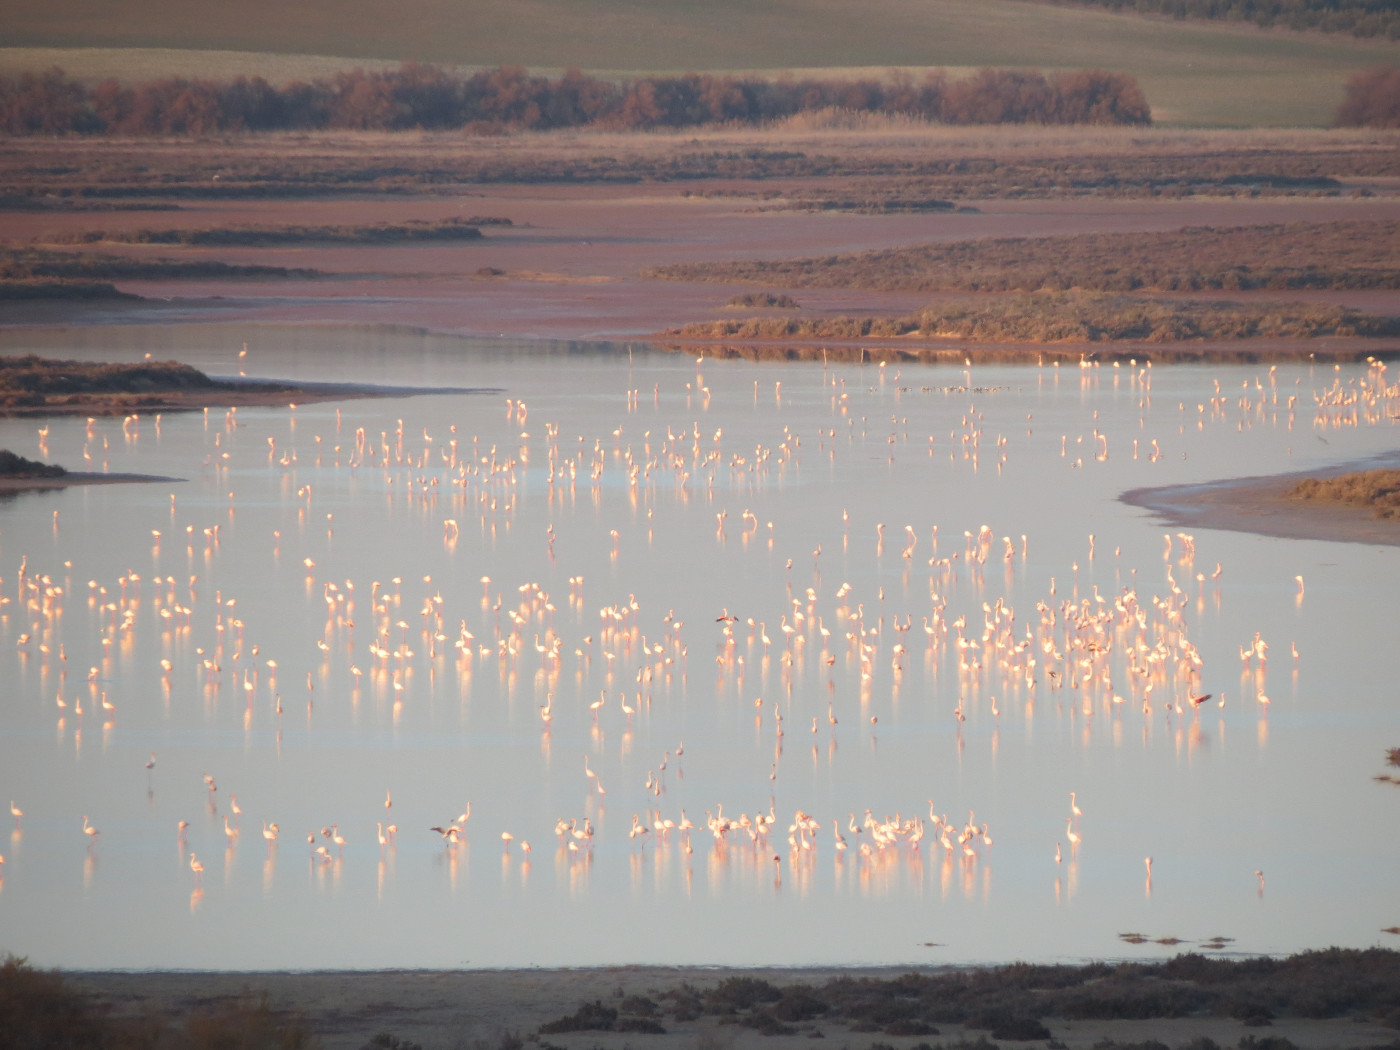 Guided tours at the lake - Flamingos and more